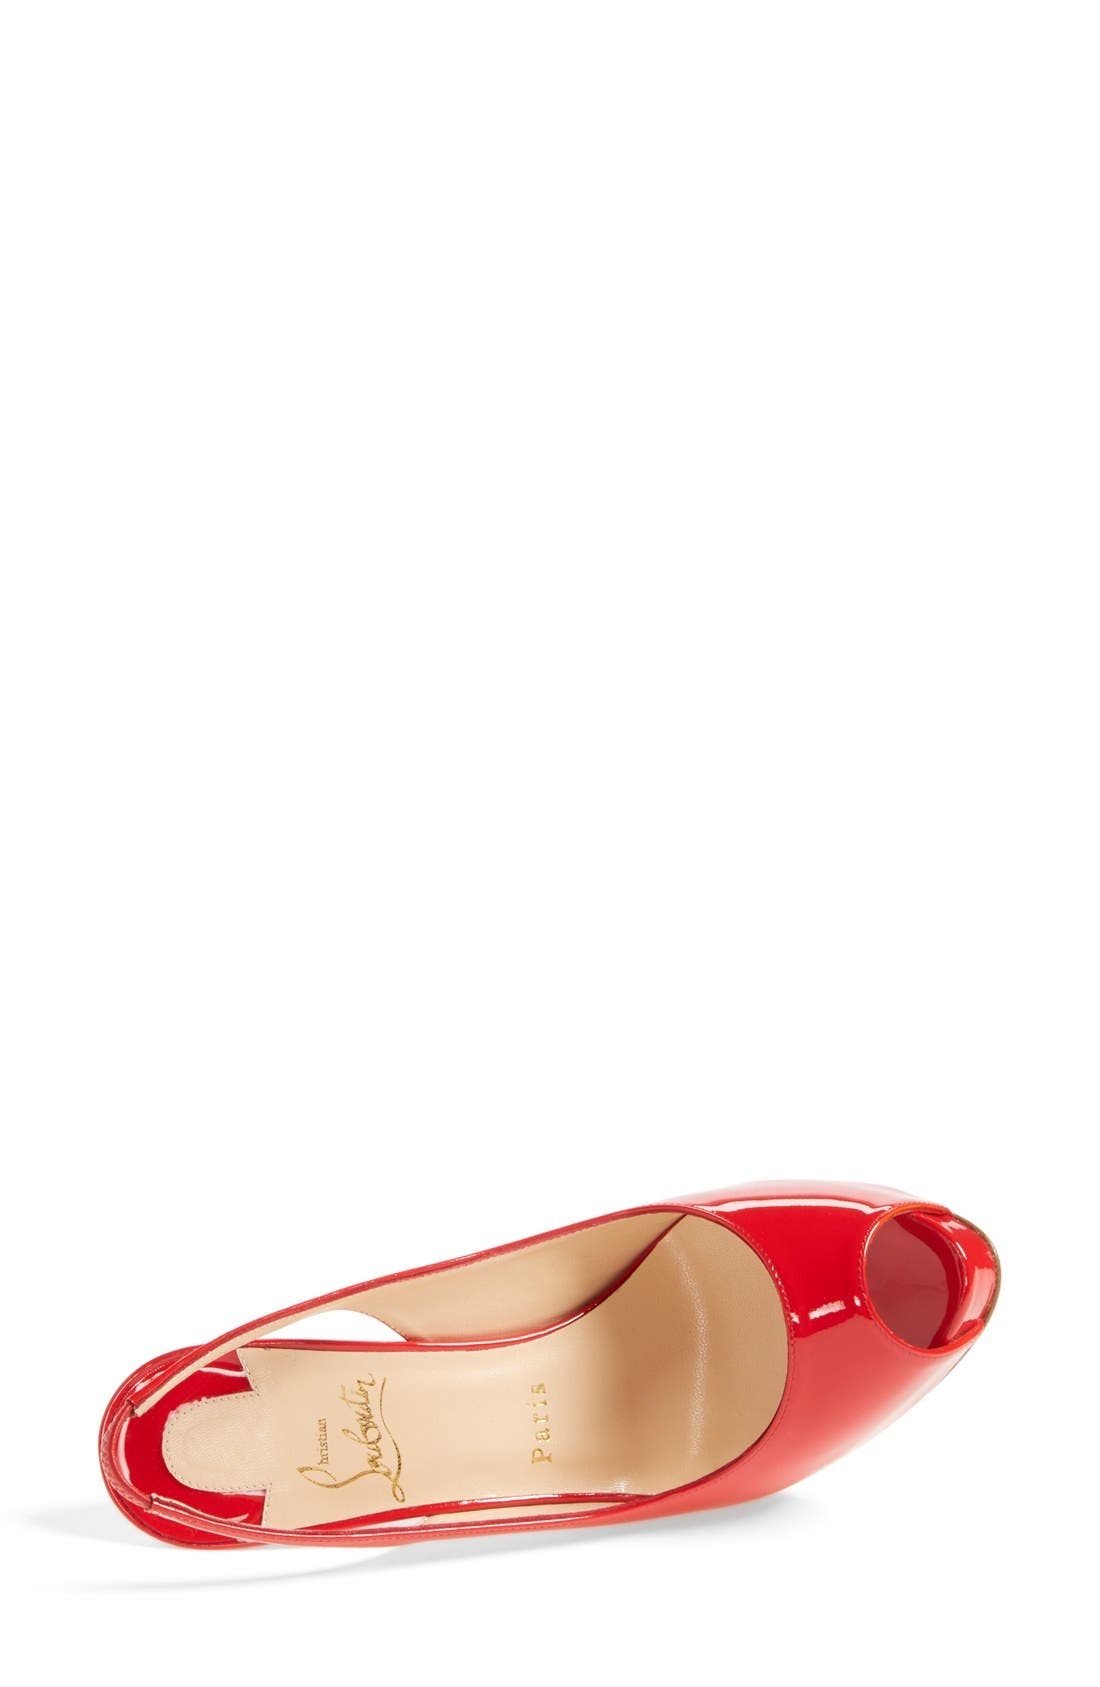 Alternate Image 3  - Christian Louboutin 'Private Number' Peep Toe Slingback Pump